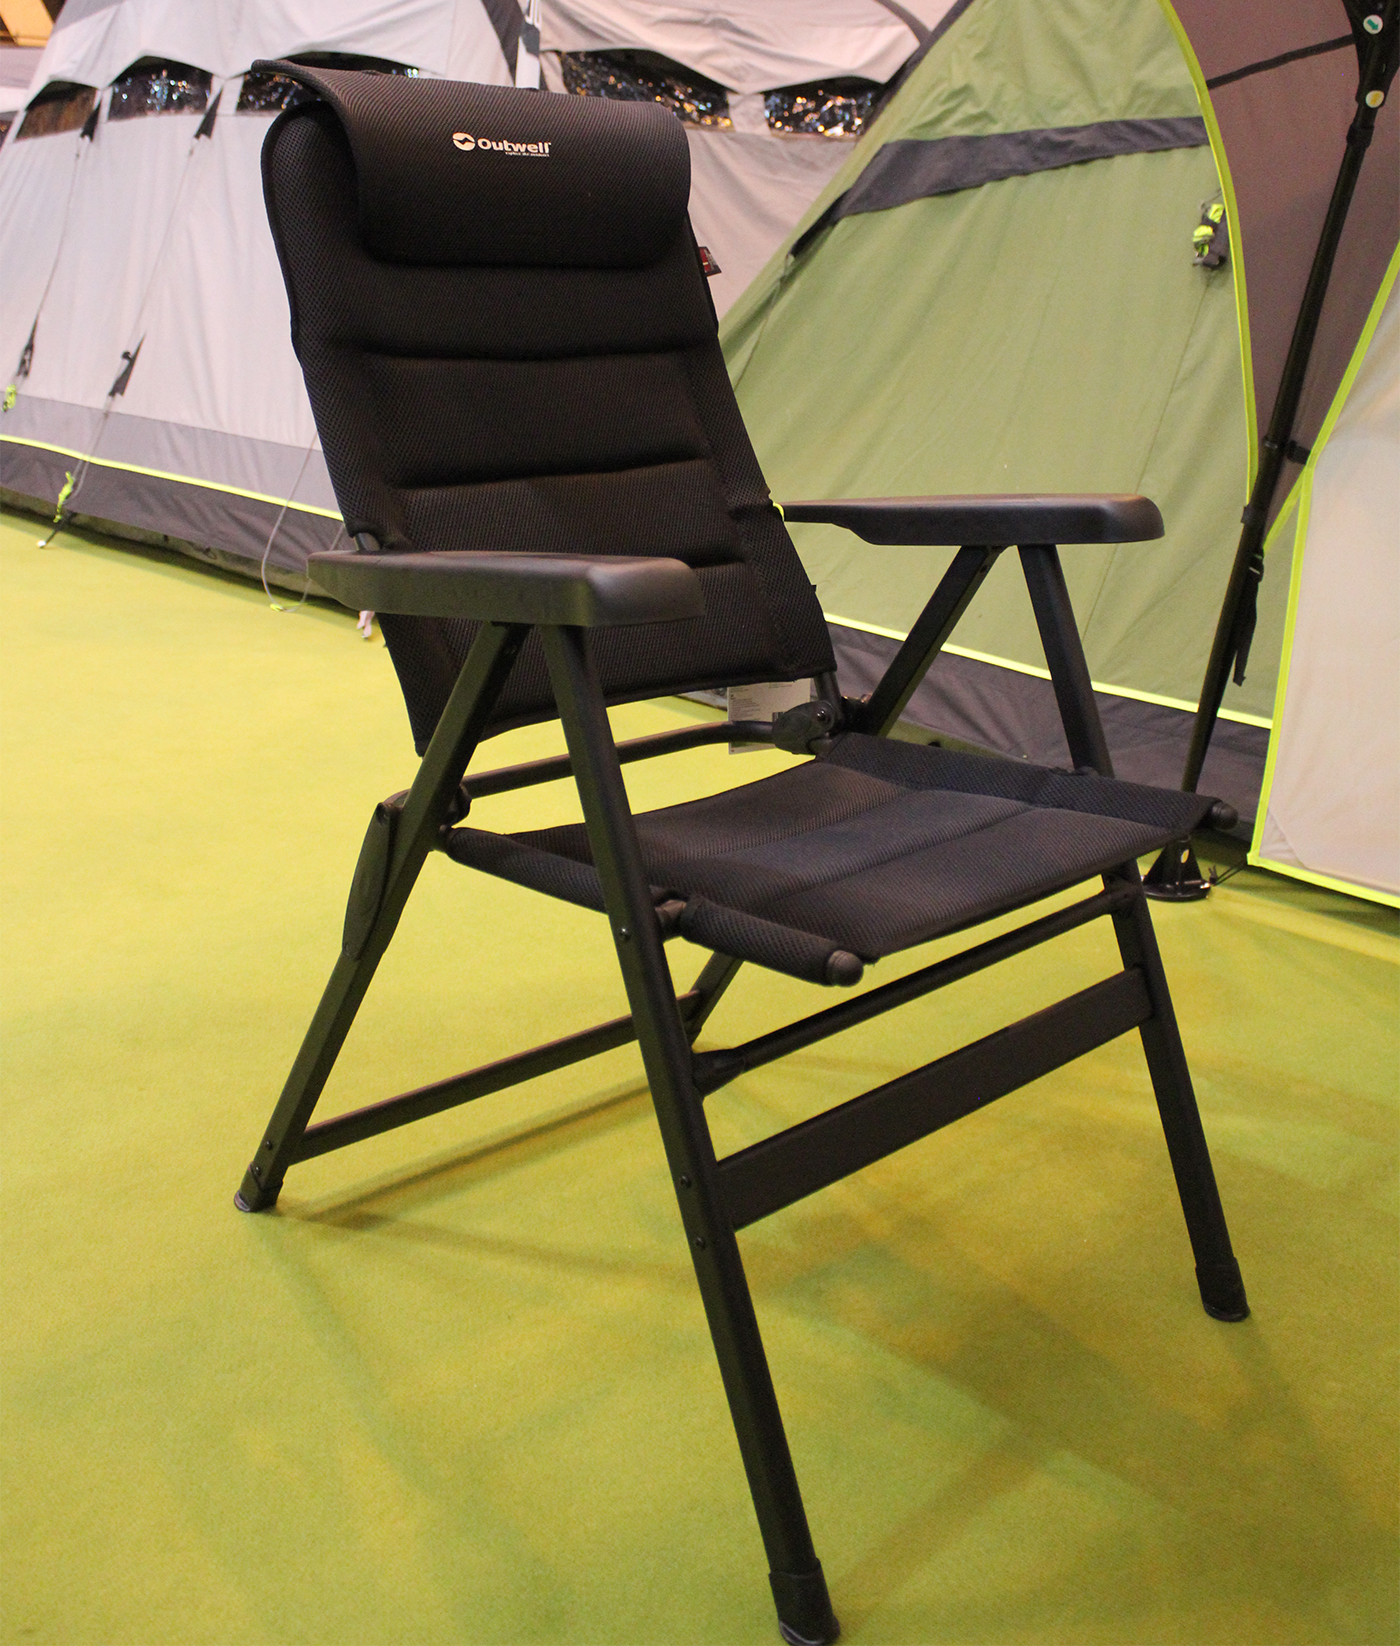 Outwell Grand Canion Black Mesh Camping Chair